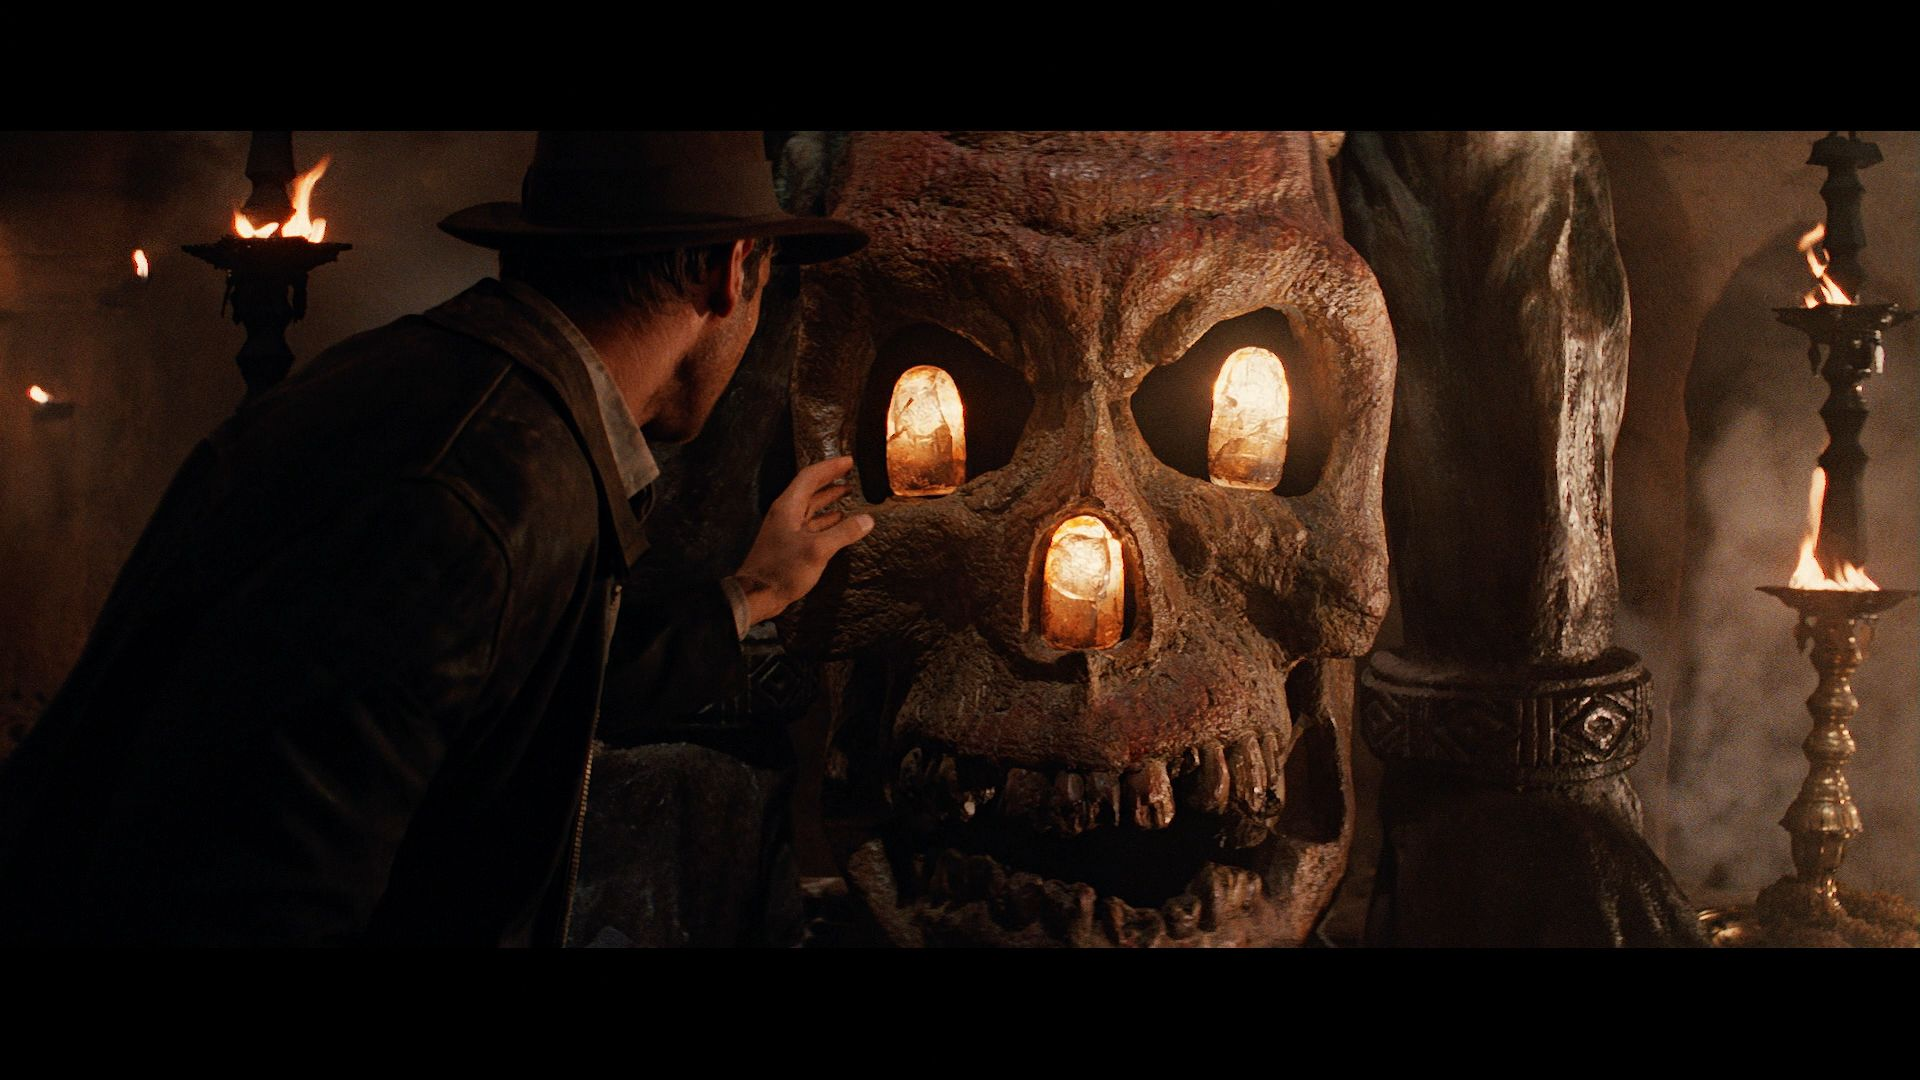 indiana-jones-and-the-temple-of-doom-review-by-sandra-harris-555211